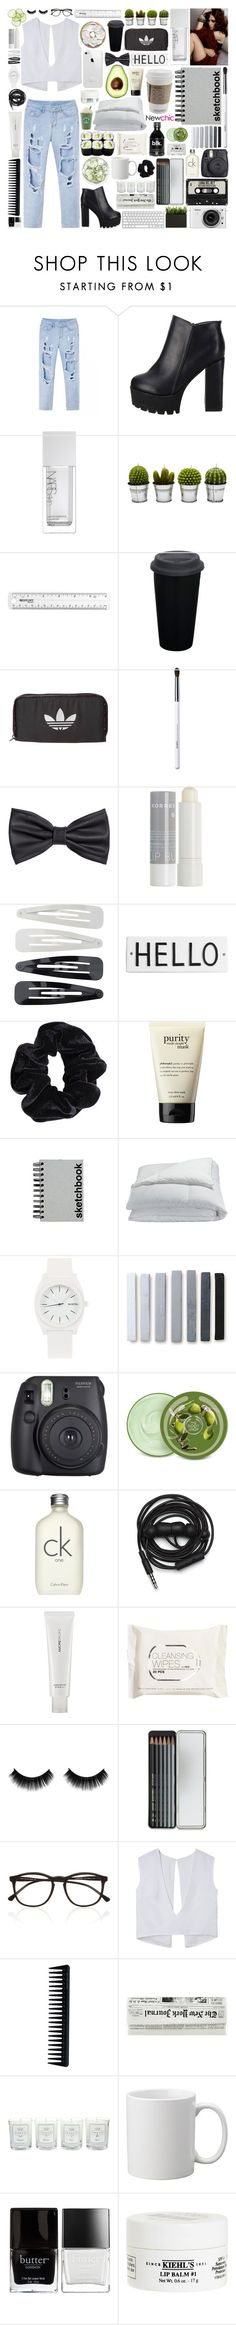 """☾; ""people talk to me, and all the voices just burn holes"""" by the-forgotten-wolf ❤ liked on Polyvore featuring NARS Cosmetics, Billabong, adidas Originals, Obsessive Compulsive Cosmetics, H&M, Korres, Forever 21, Rosanna, American Apparel and philosophy"